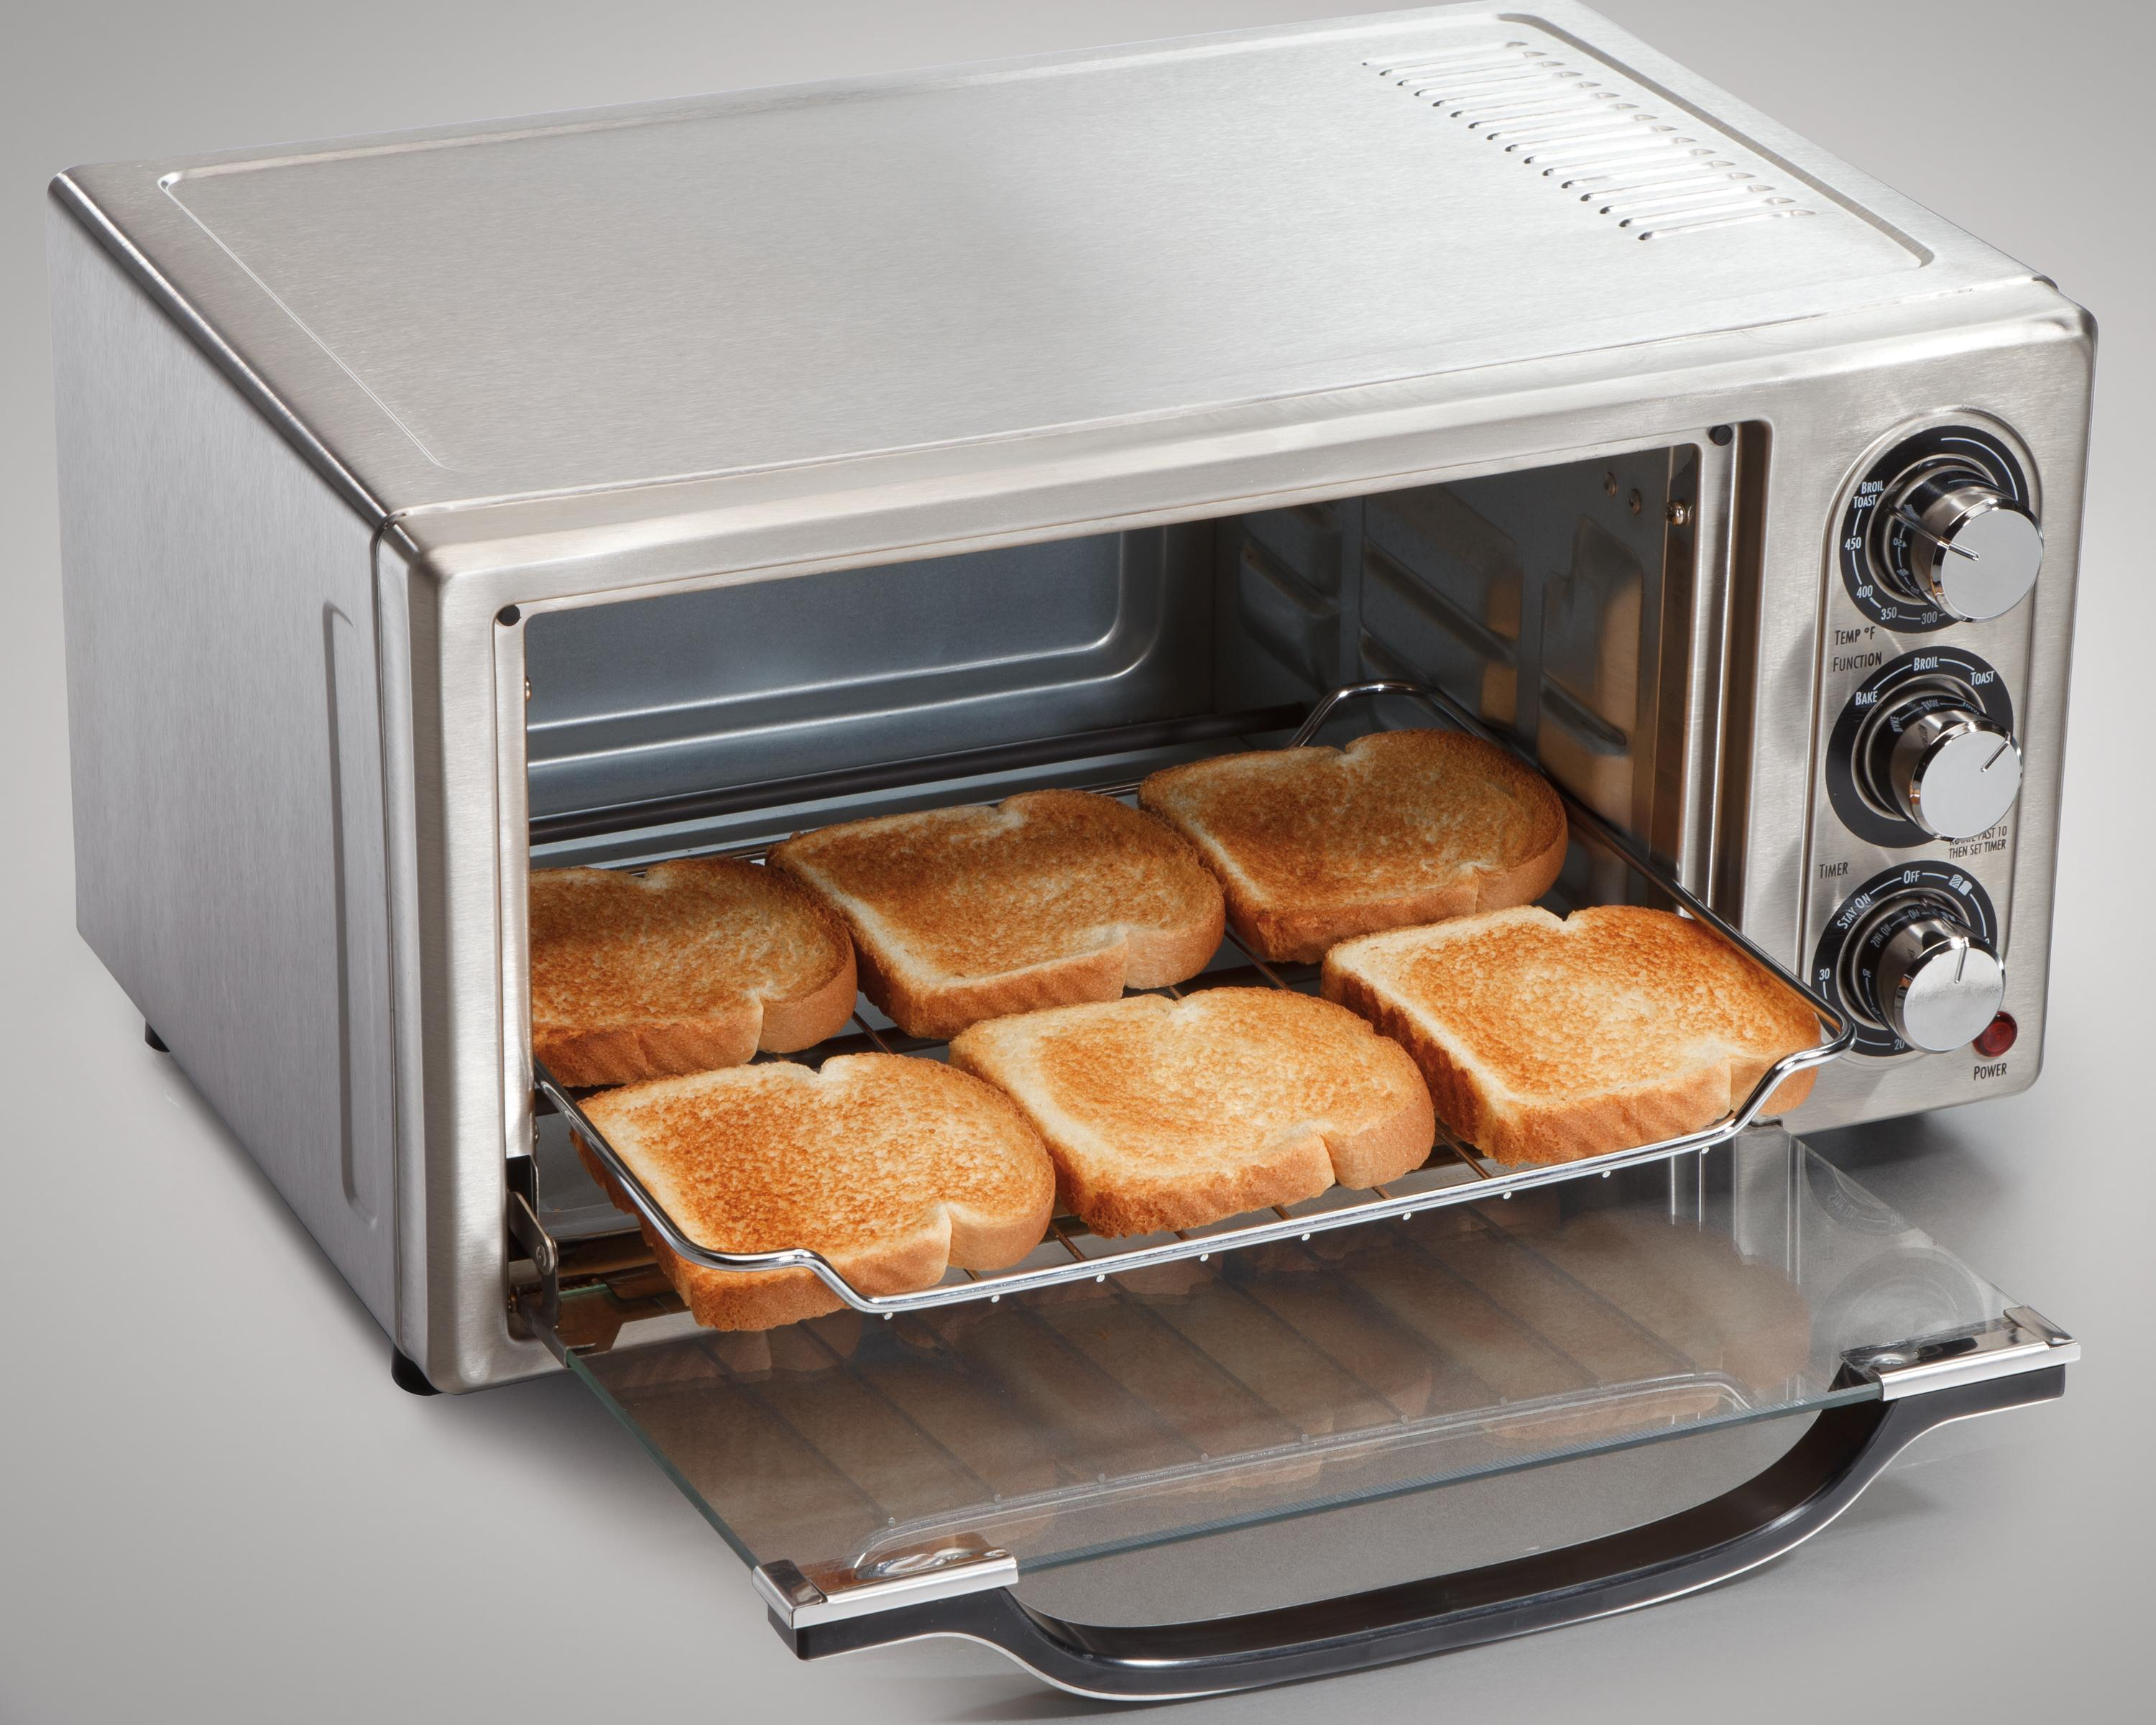 countertop beach steel oven toaster black in pin for stainless and sale toastation hamilton